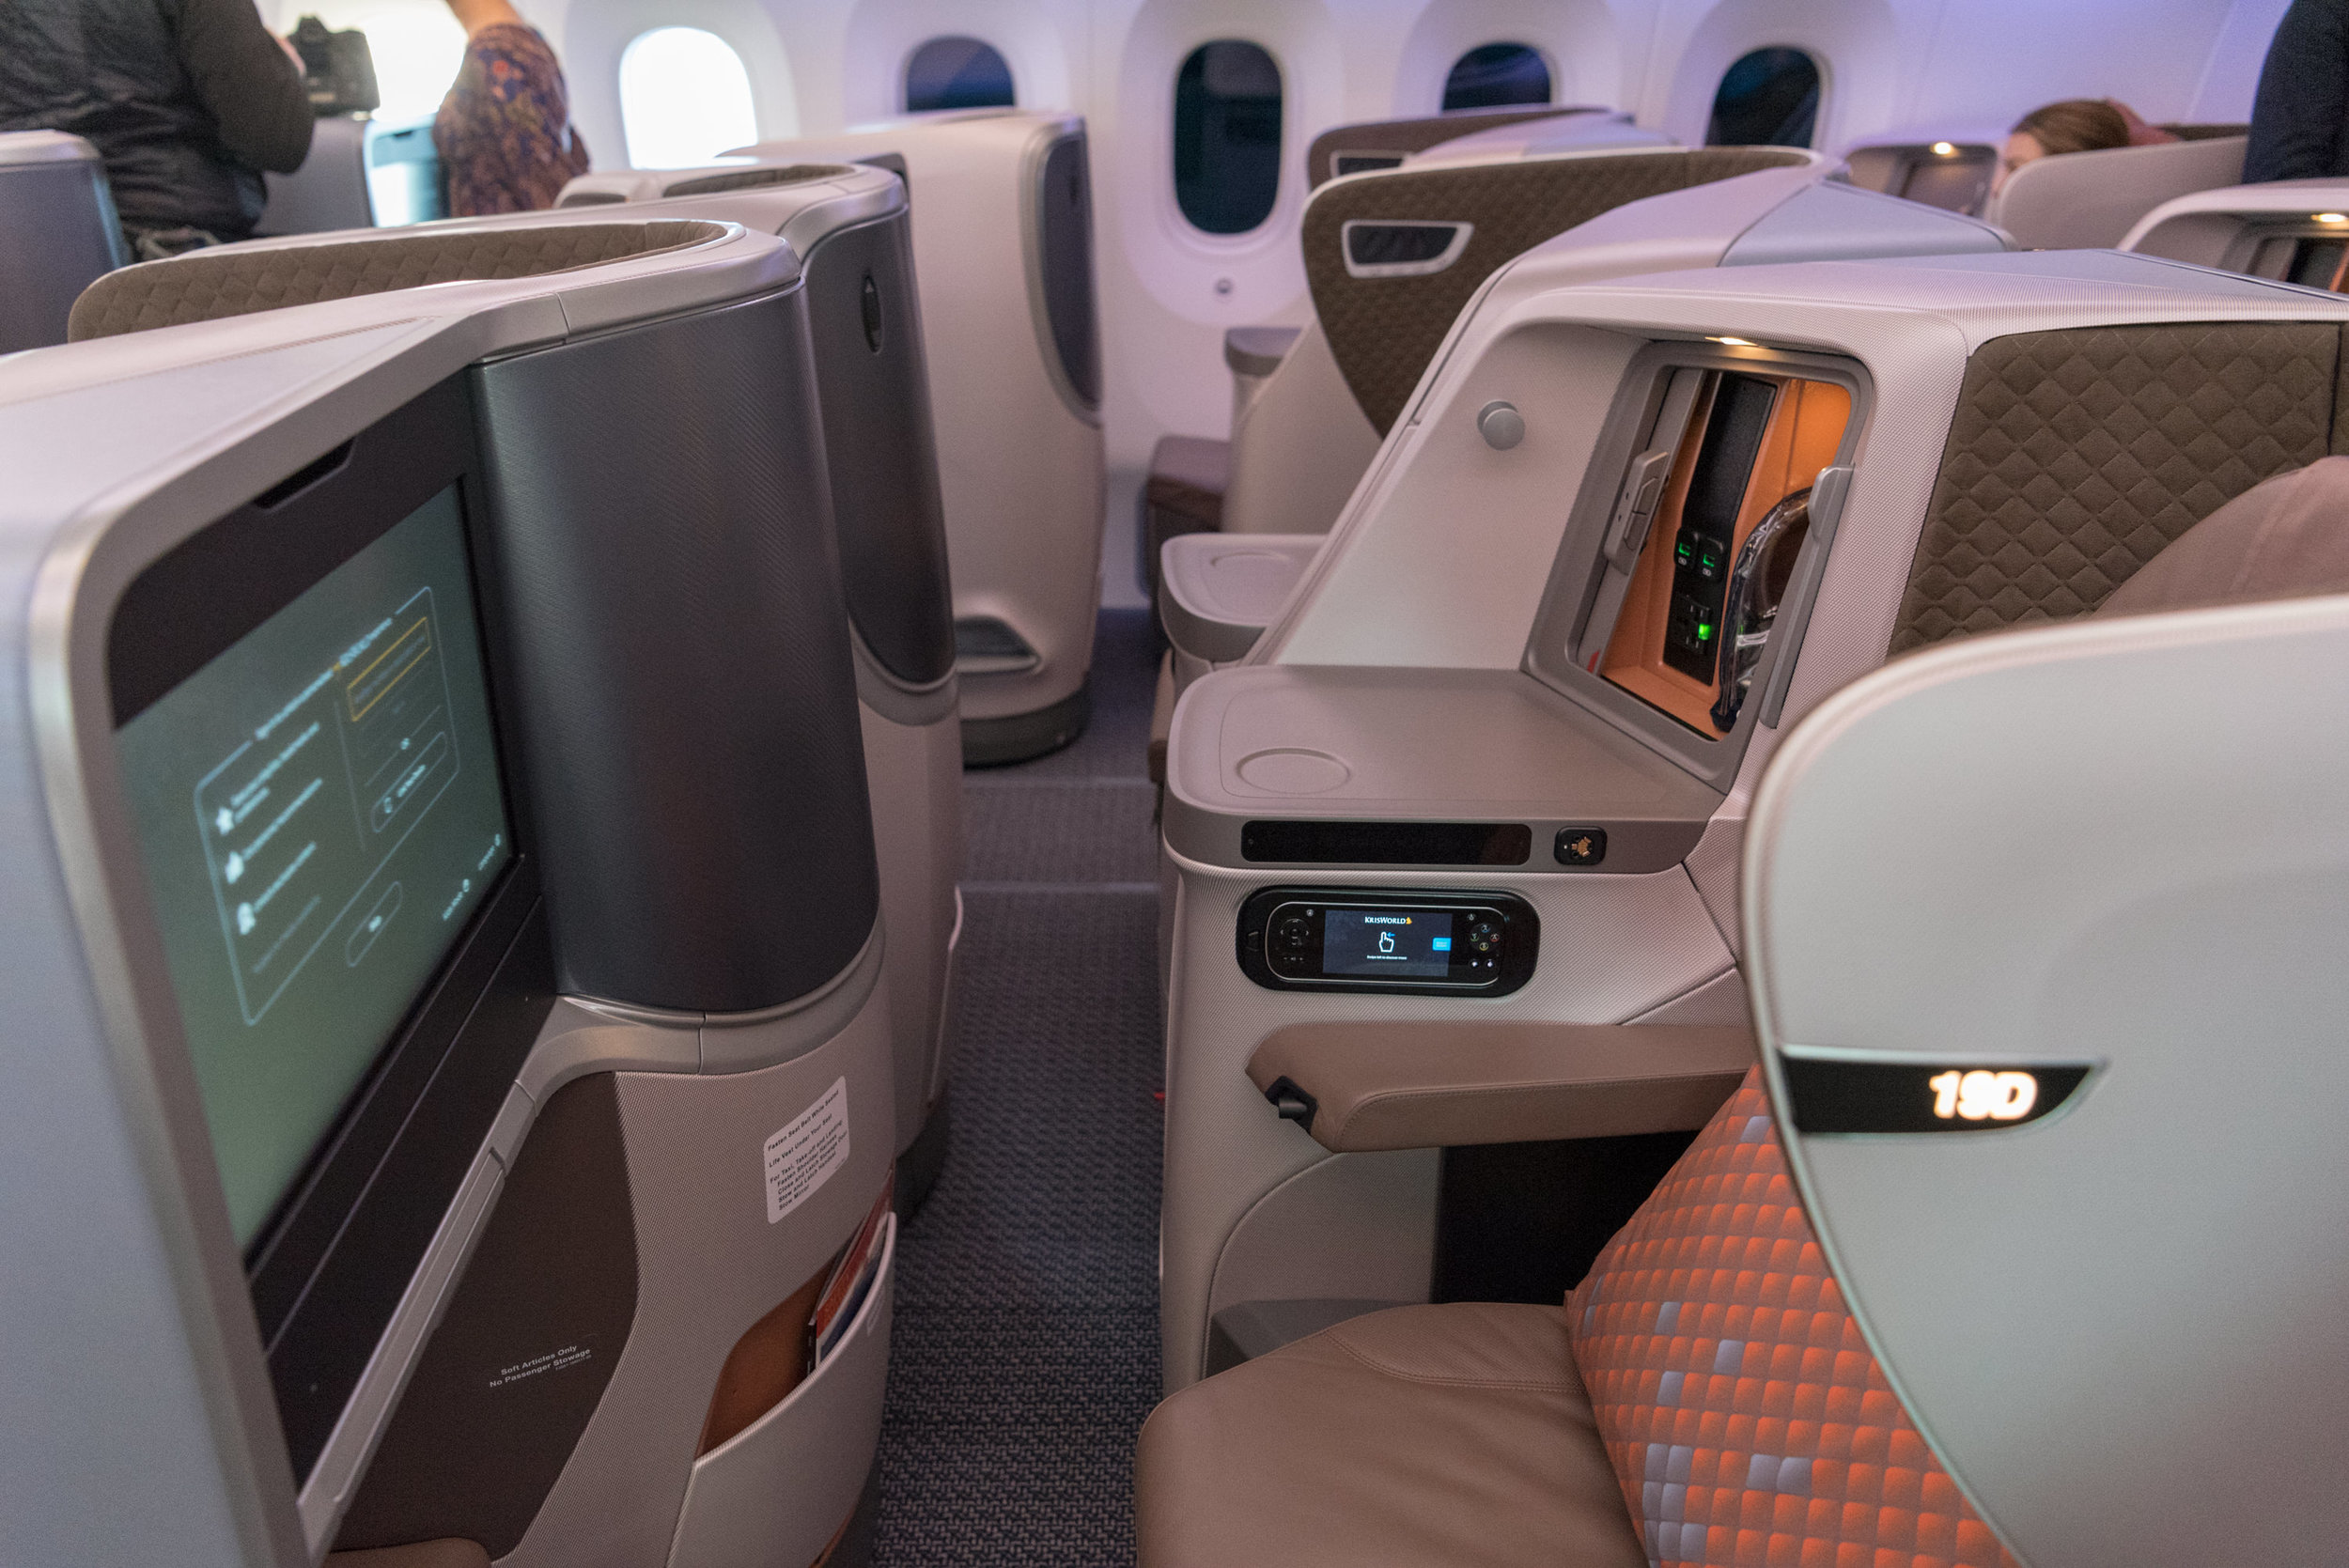 Alternating Middle Seats  New Regional Business Class (2018) - Singapore Airlines